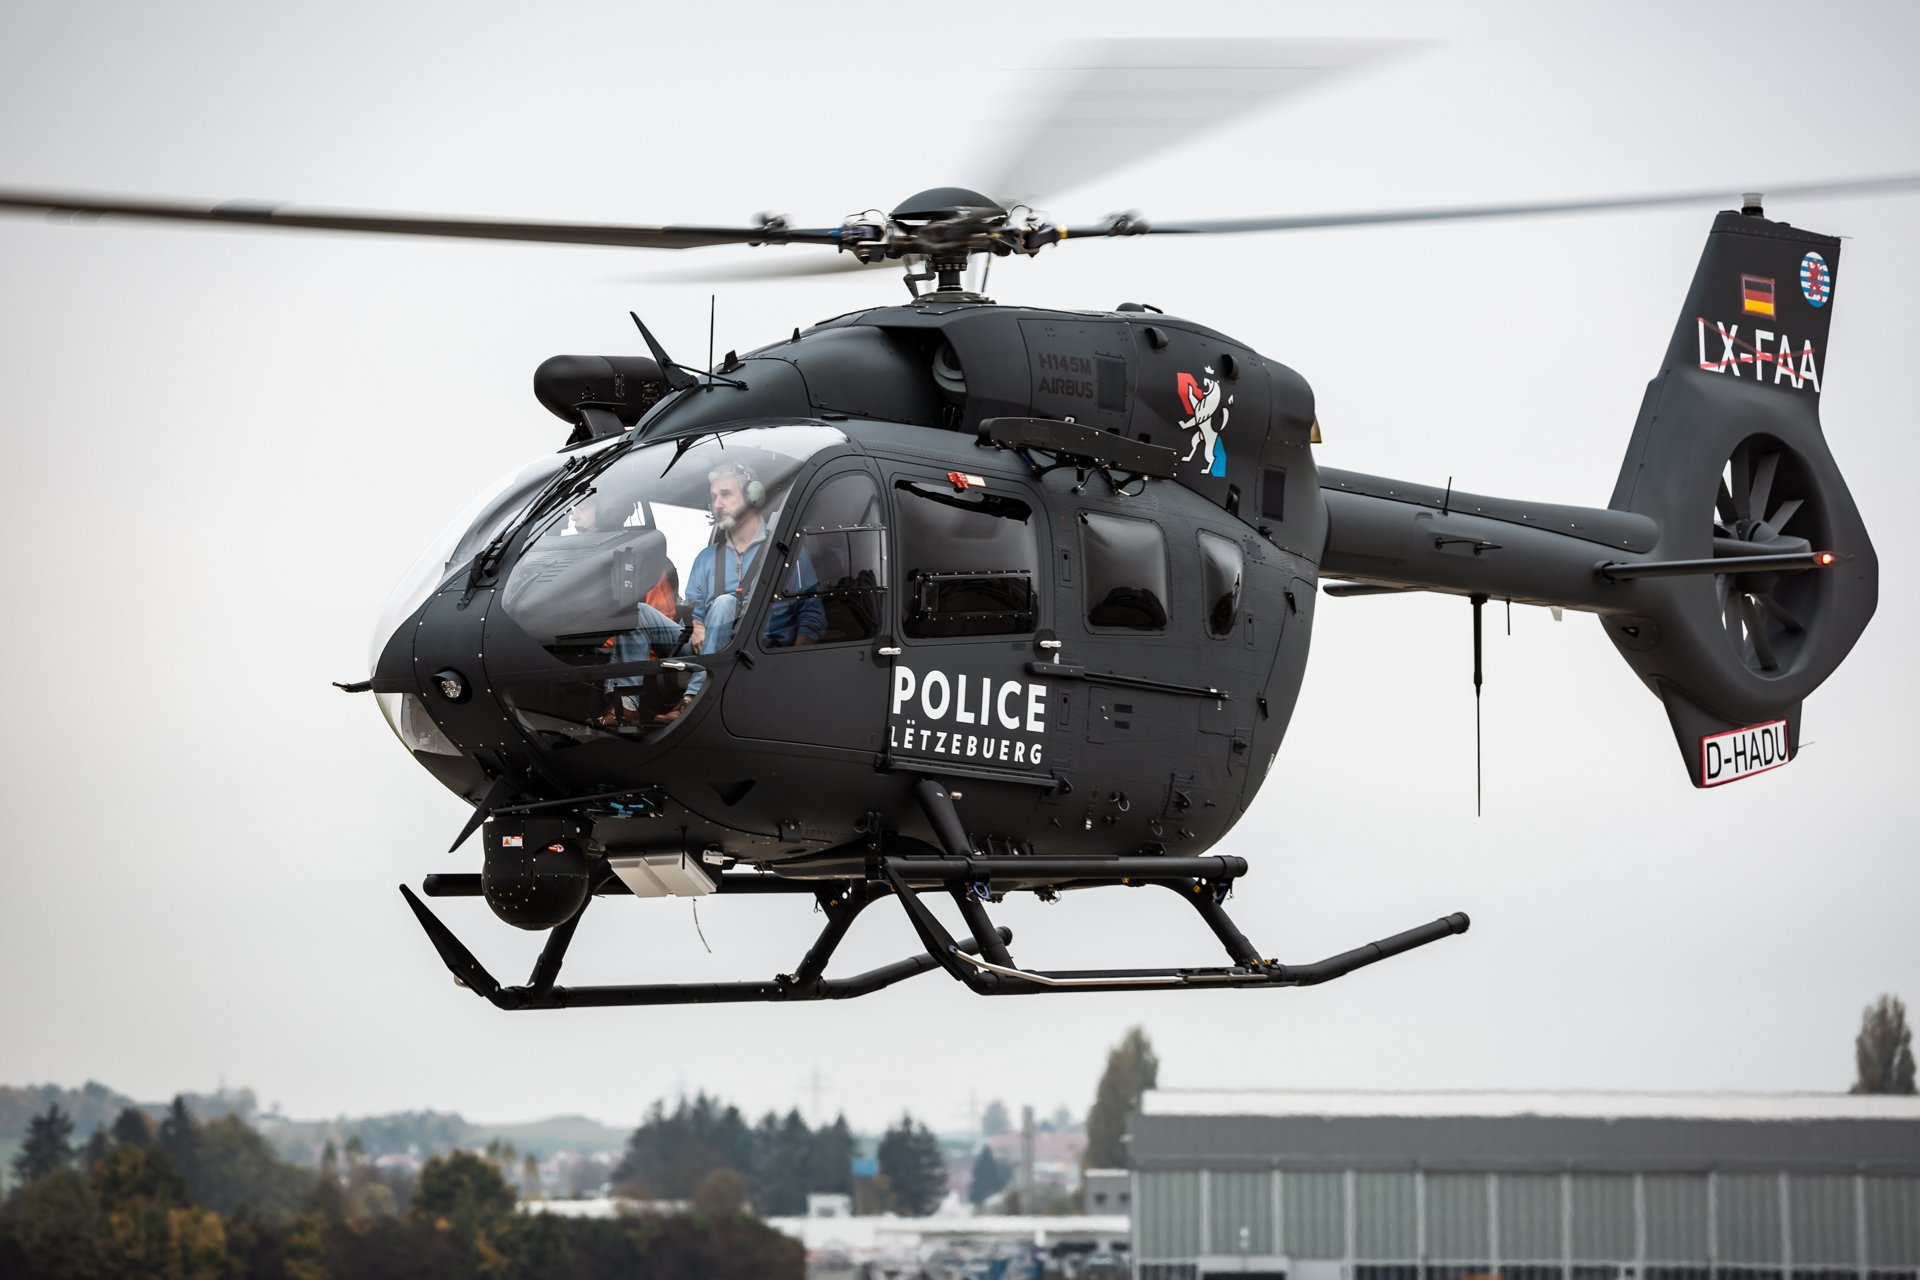 Airbus Helicopters has delivered the first of two H145M multipurpose helicopters for defence and security missions to the Government of the Grand-Duchy of Luxembourg.